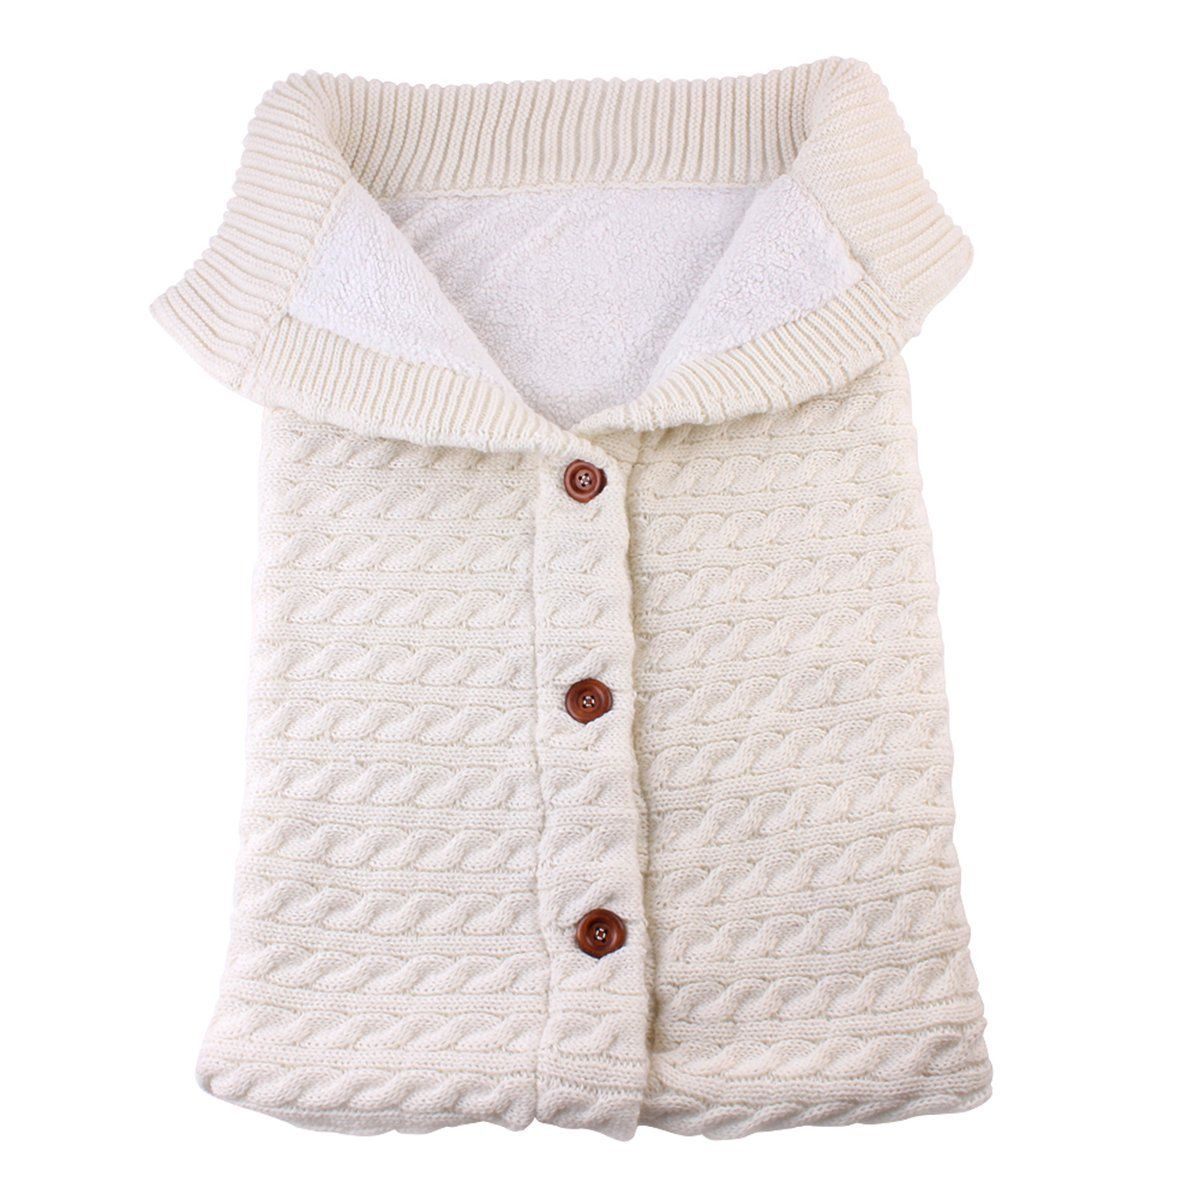 Newborn Baby Winter Swaddle Wrap